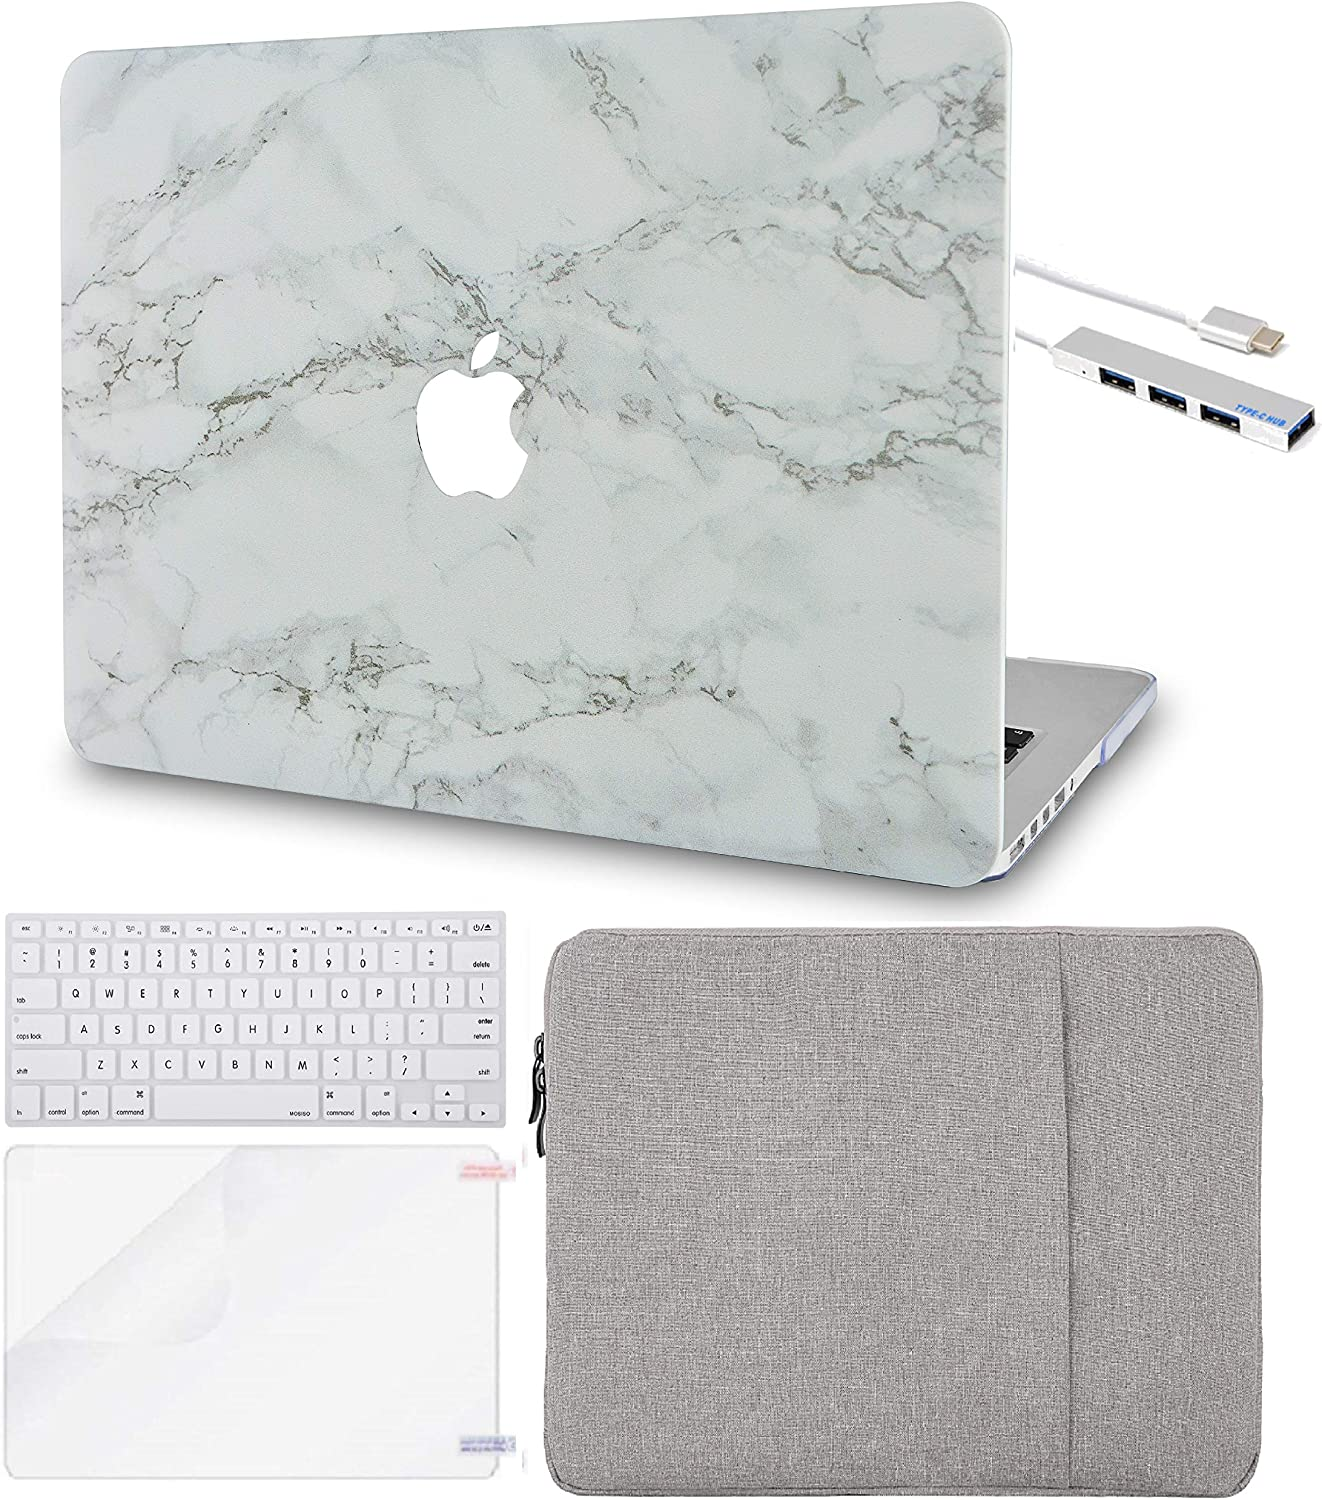 LuvCase 5in1 Laptop Case for MacBook Air 13 Inch (2020) A2179 Retina Display (Touch ID) Hard Shell Cover, Sleeve, USB Hub 3.0, Keyboard Cover&Screen Protector (White Marble with Grey Veins)